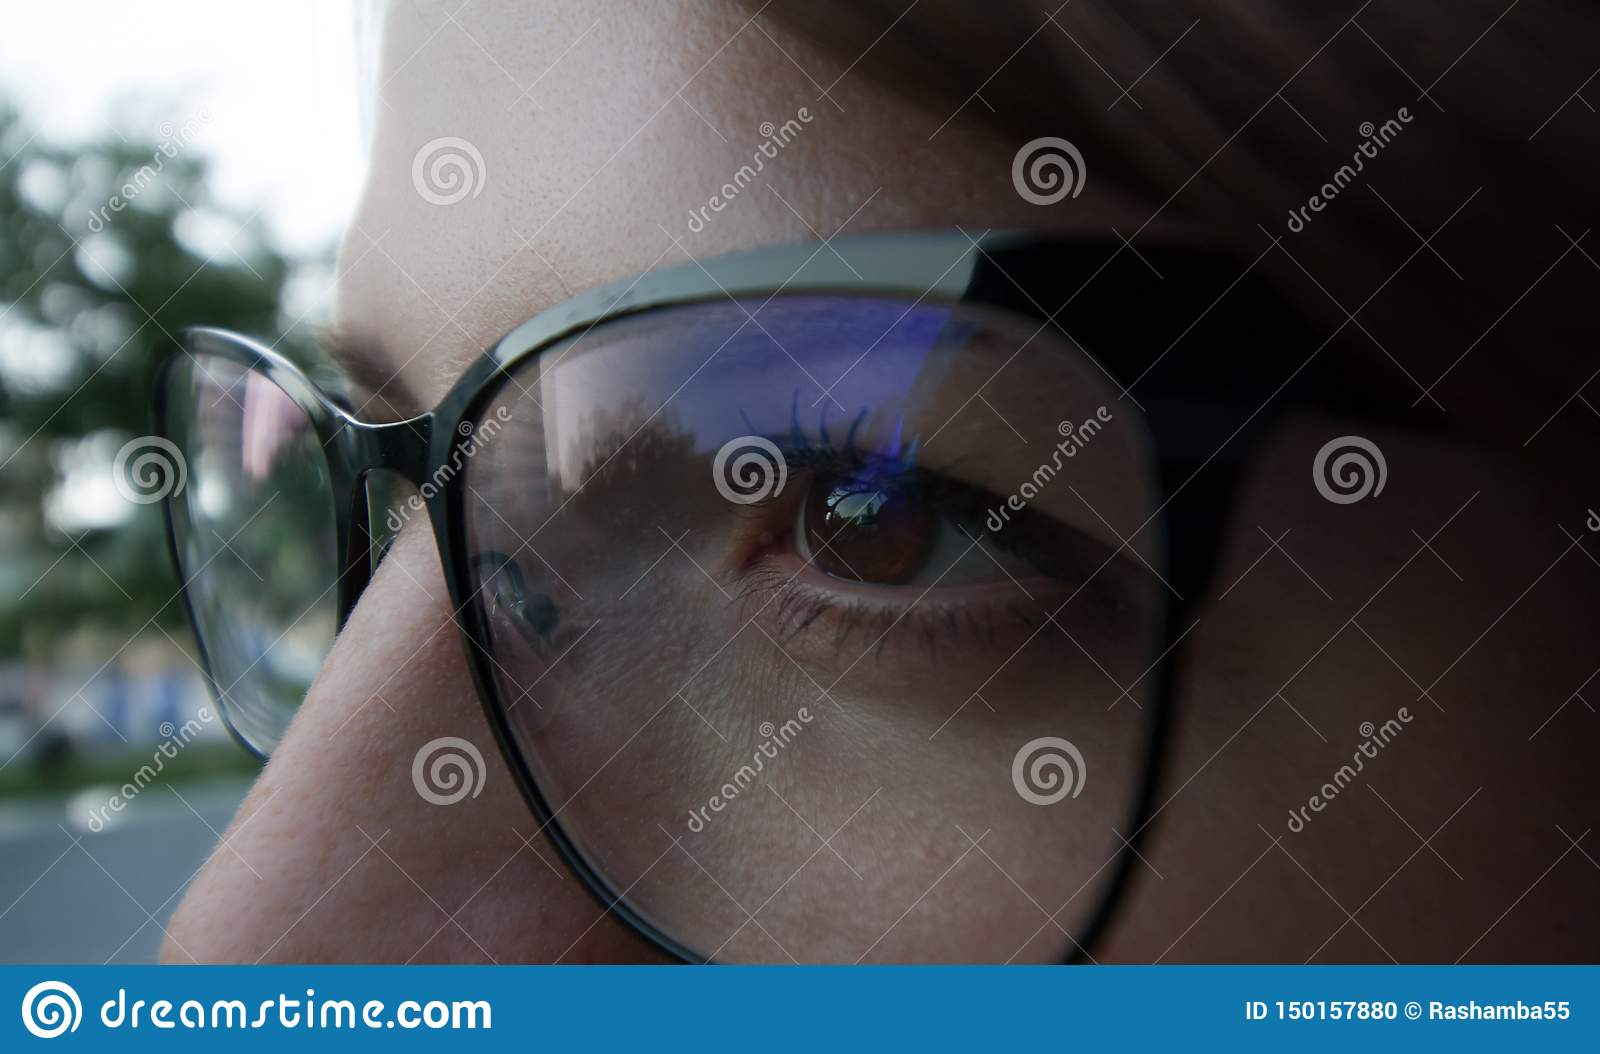 eyes of the girl wearing glasses in a black frame